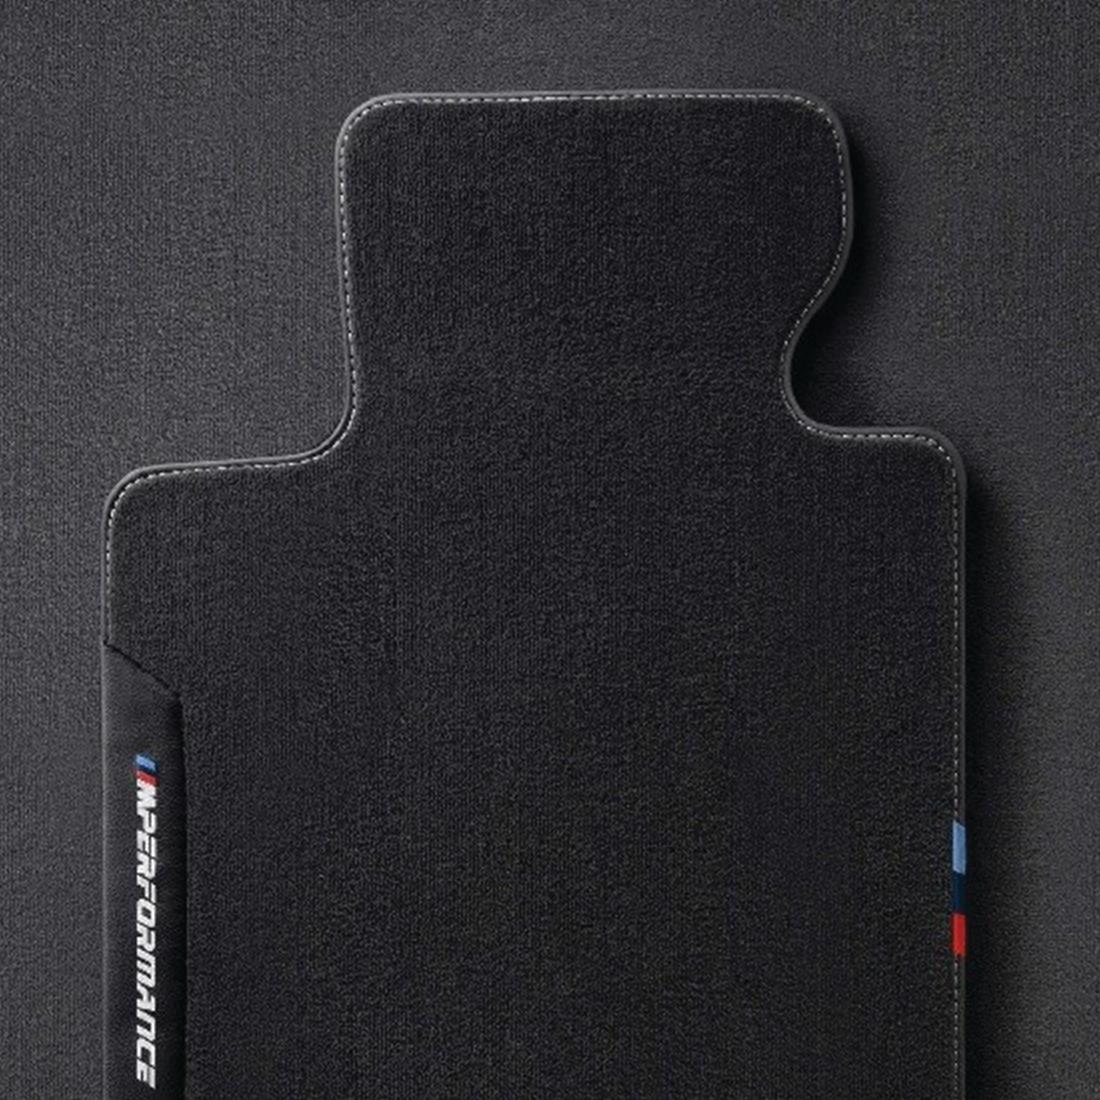 BMW M Performance Mats